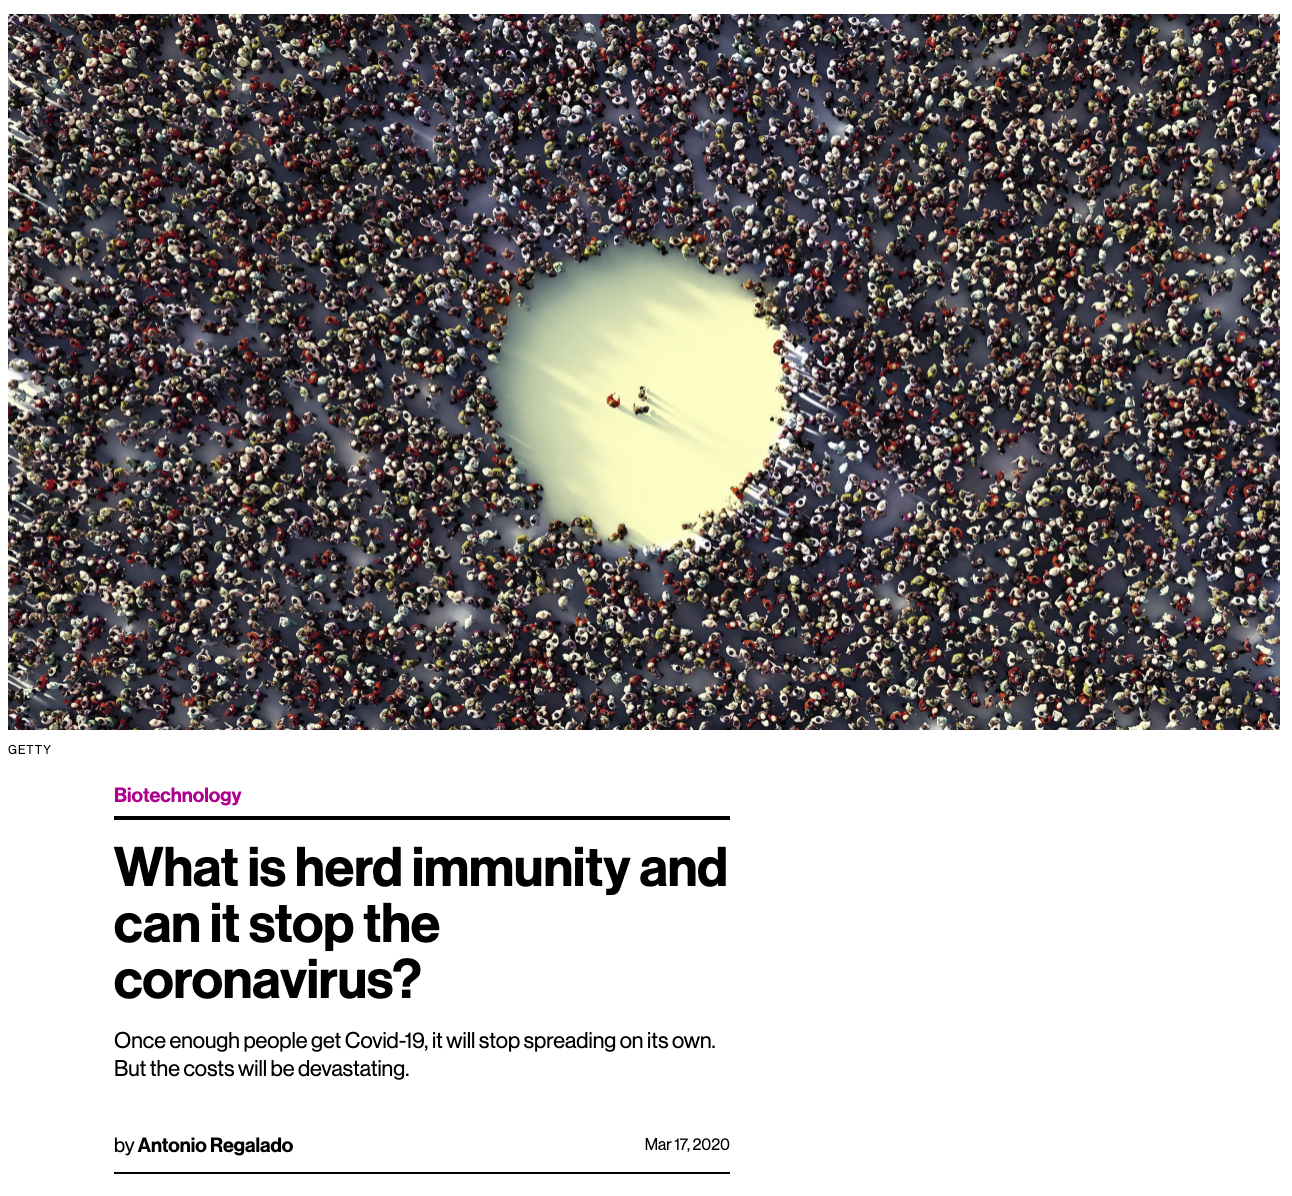 What Is Herd Immunity and Can It Stop the Coronavirus? Once enough people get COVID-19, it will stop spreading on its own. But the costs will be devastating. by Antonio Regalado, MIT Technology Review